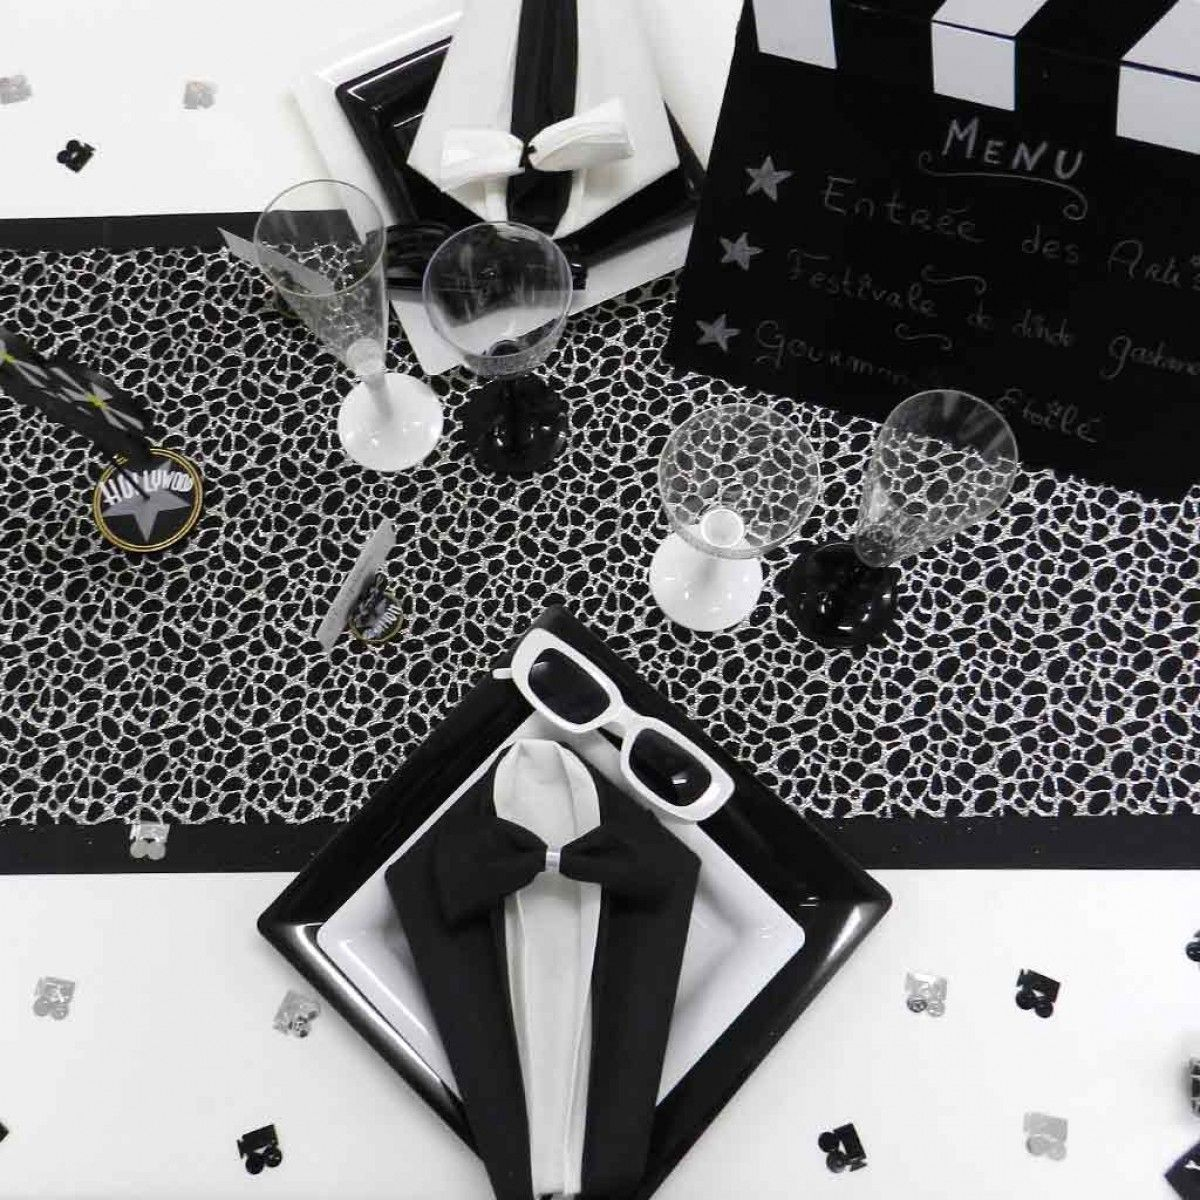 d coration de table sur le th me noir et blanc anniversaire noir et blanc pinterest. Black Bedroom Furniture Sets. Home Design Ideas